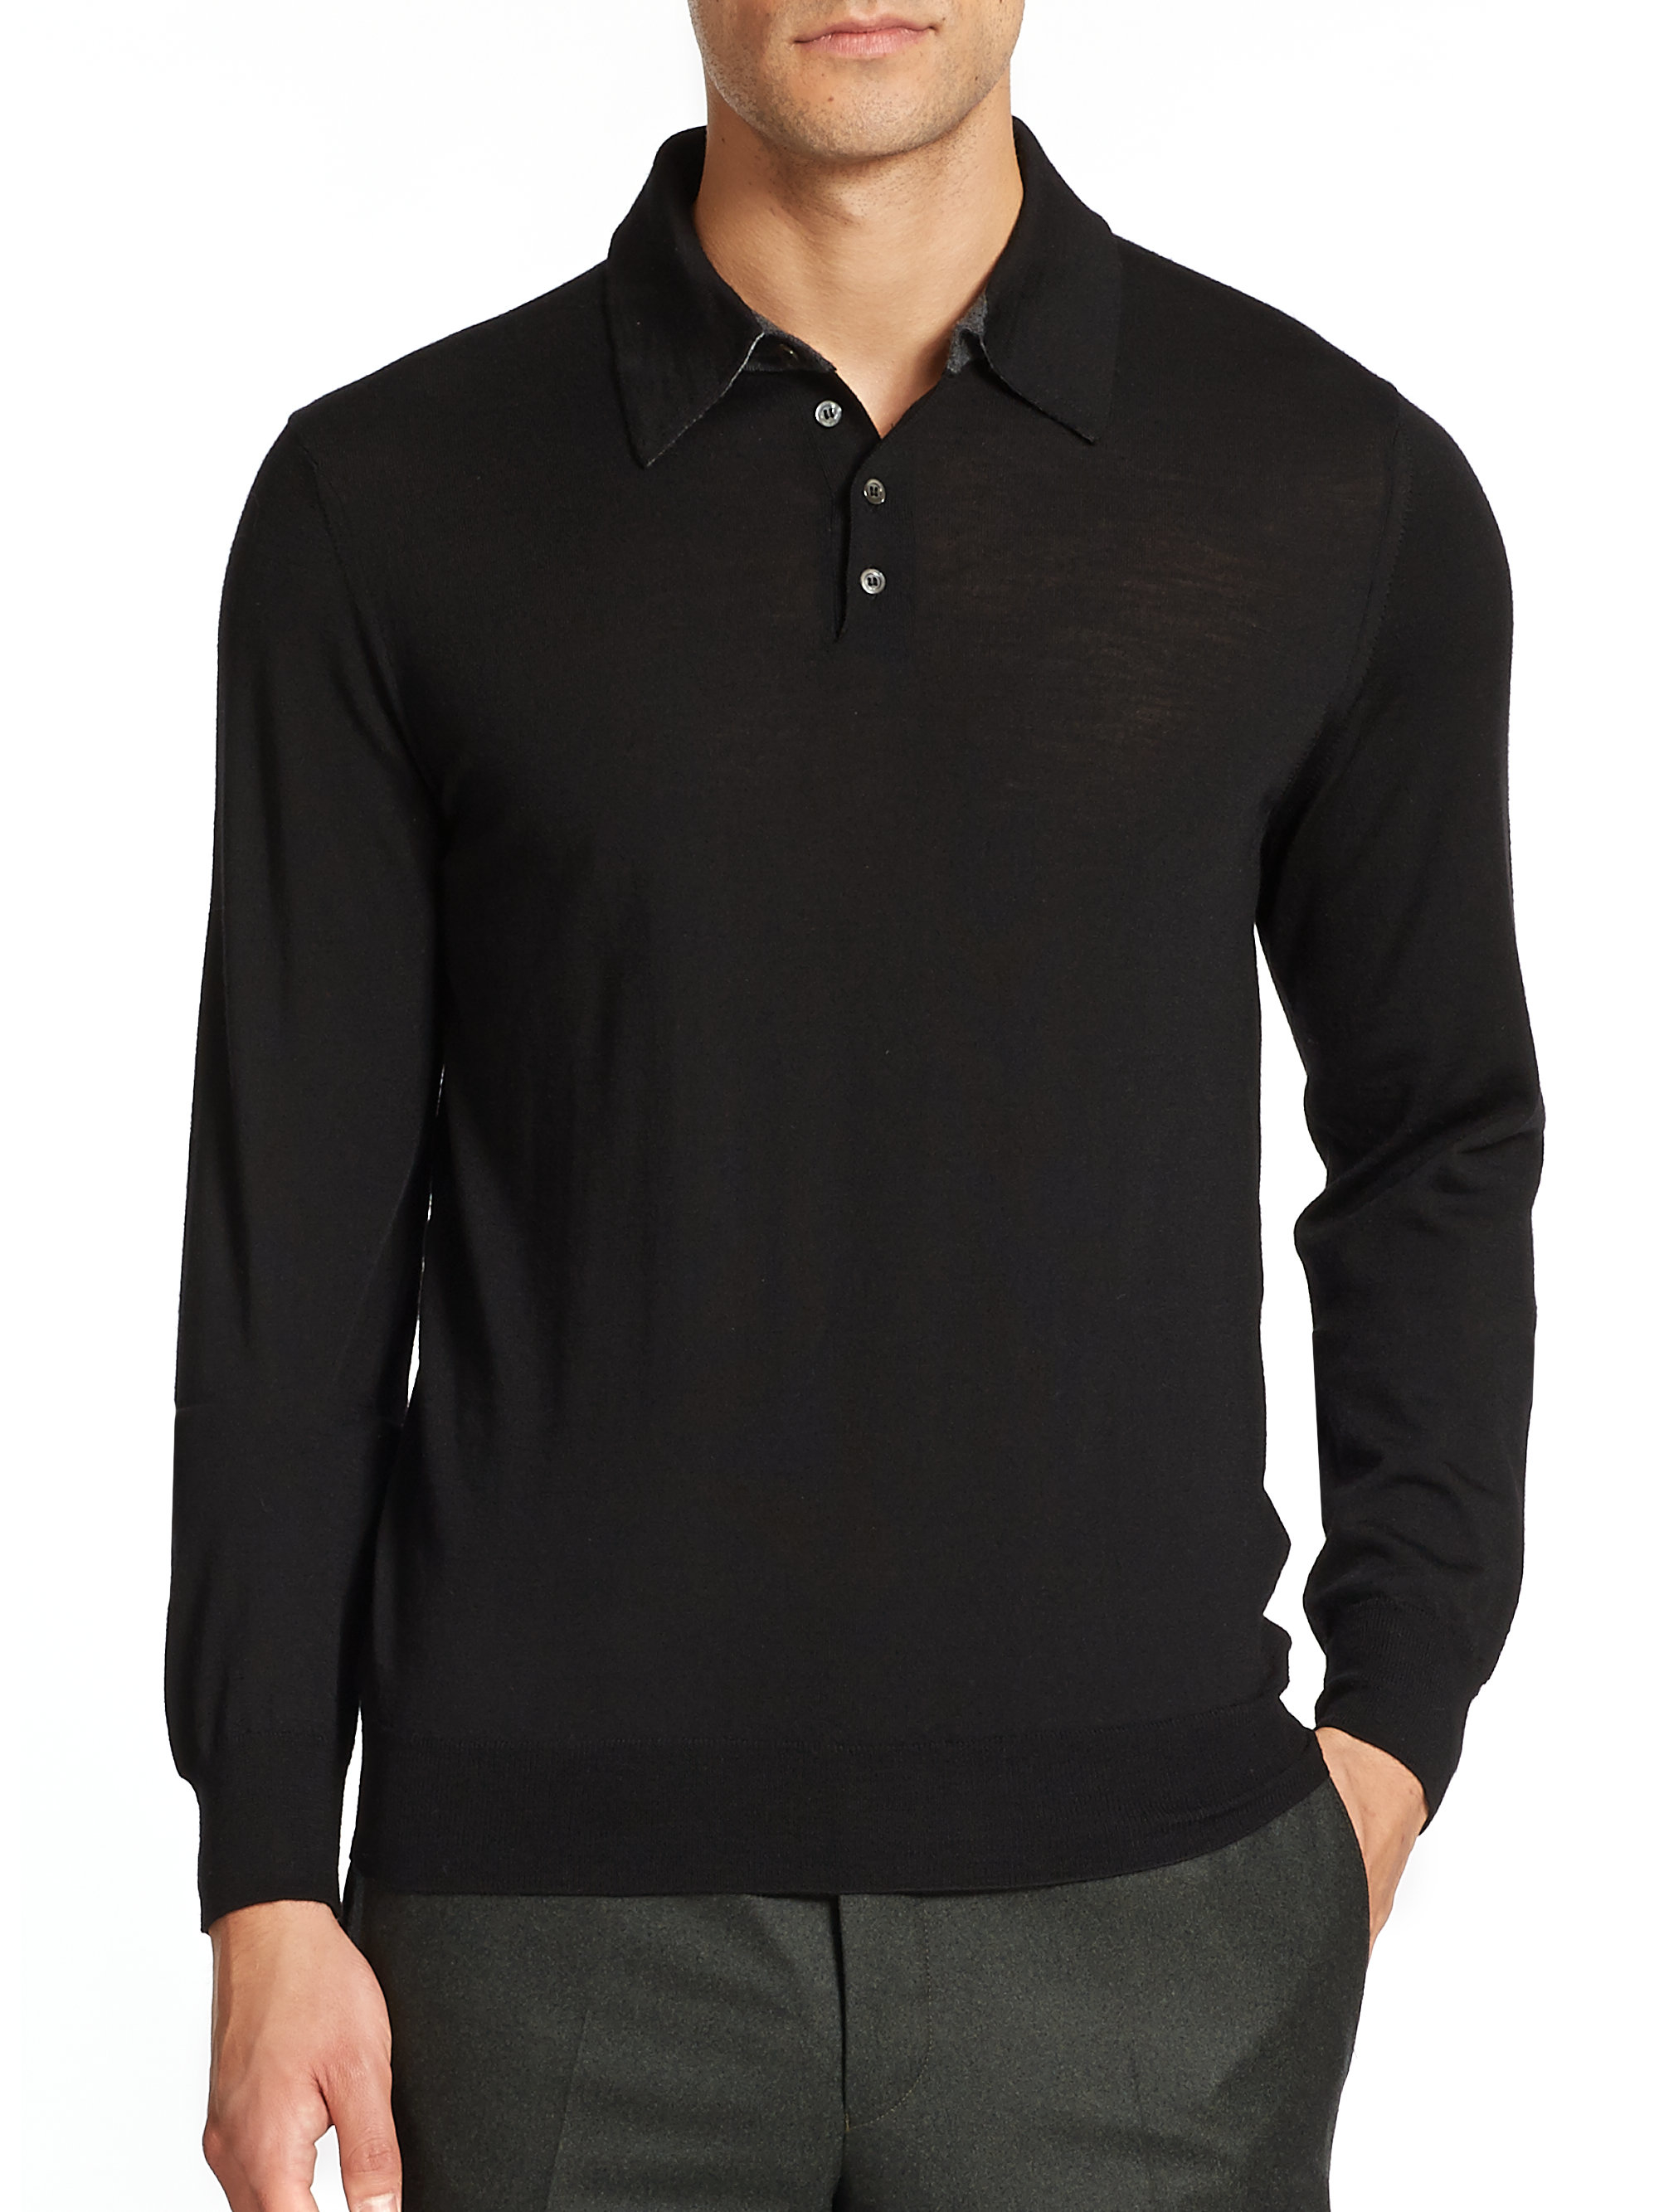 Long Sleeved Polo Shirts For Men